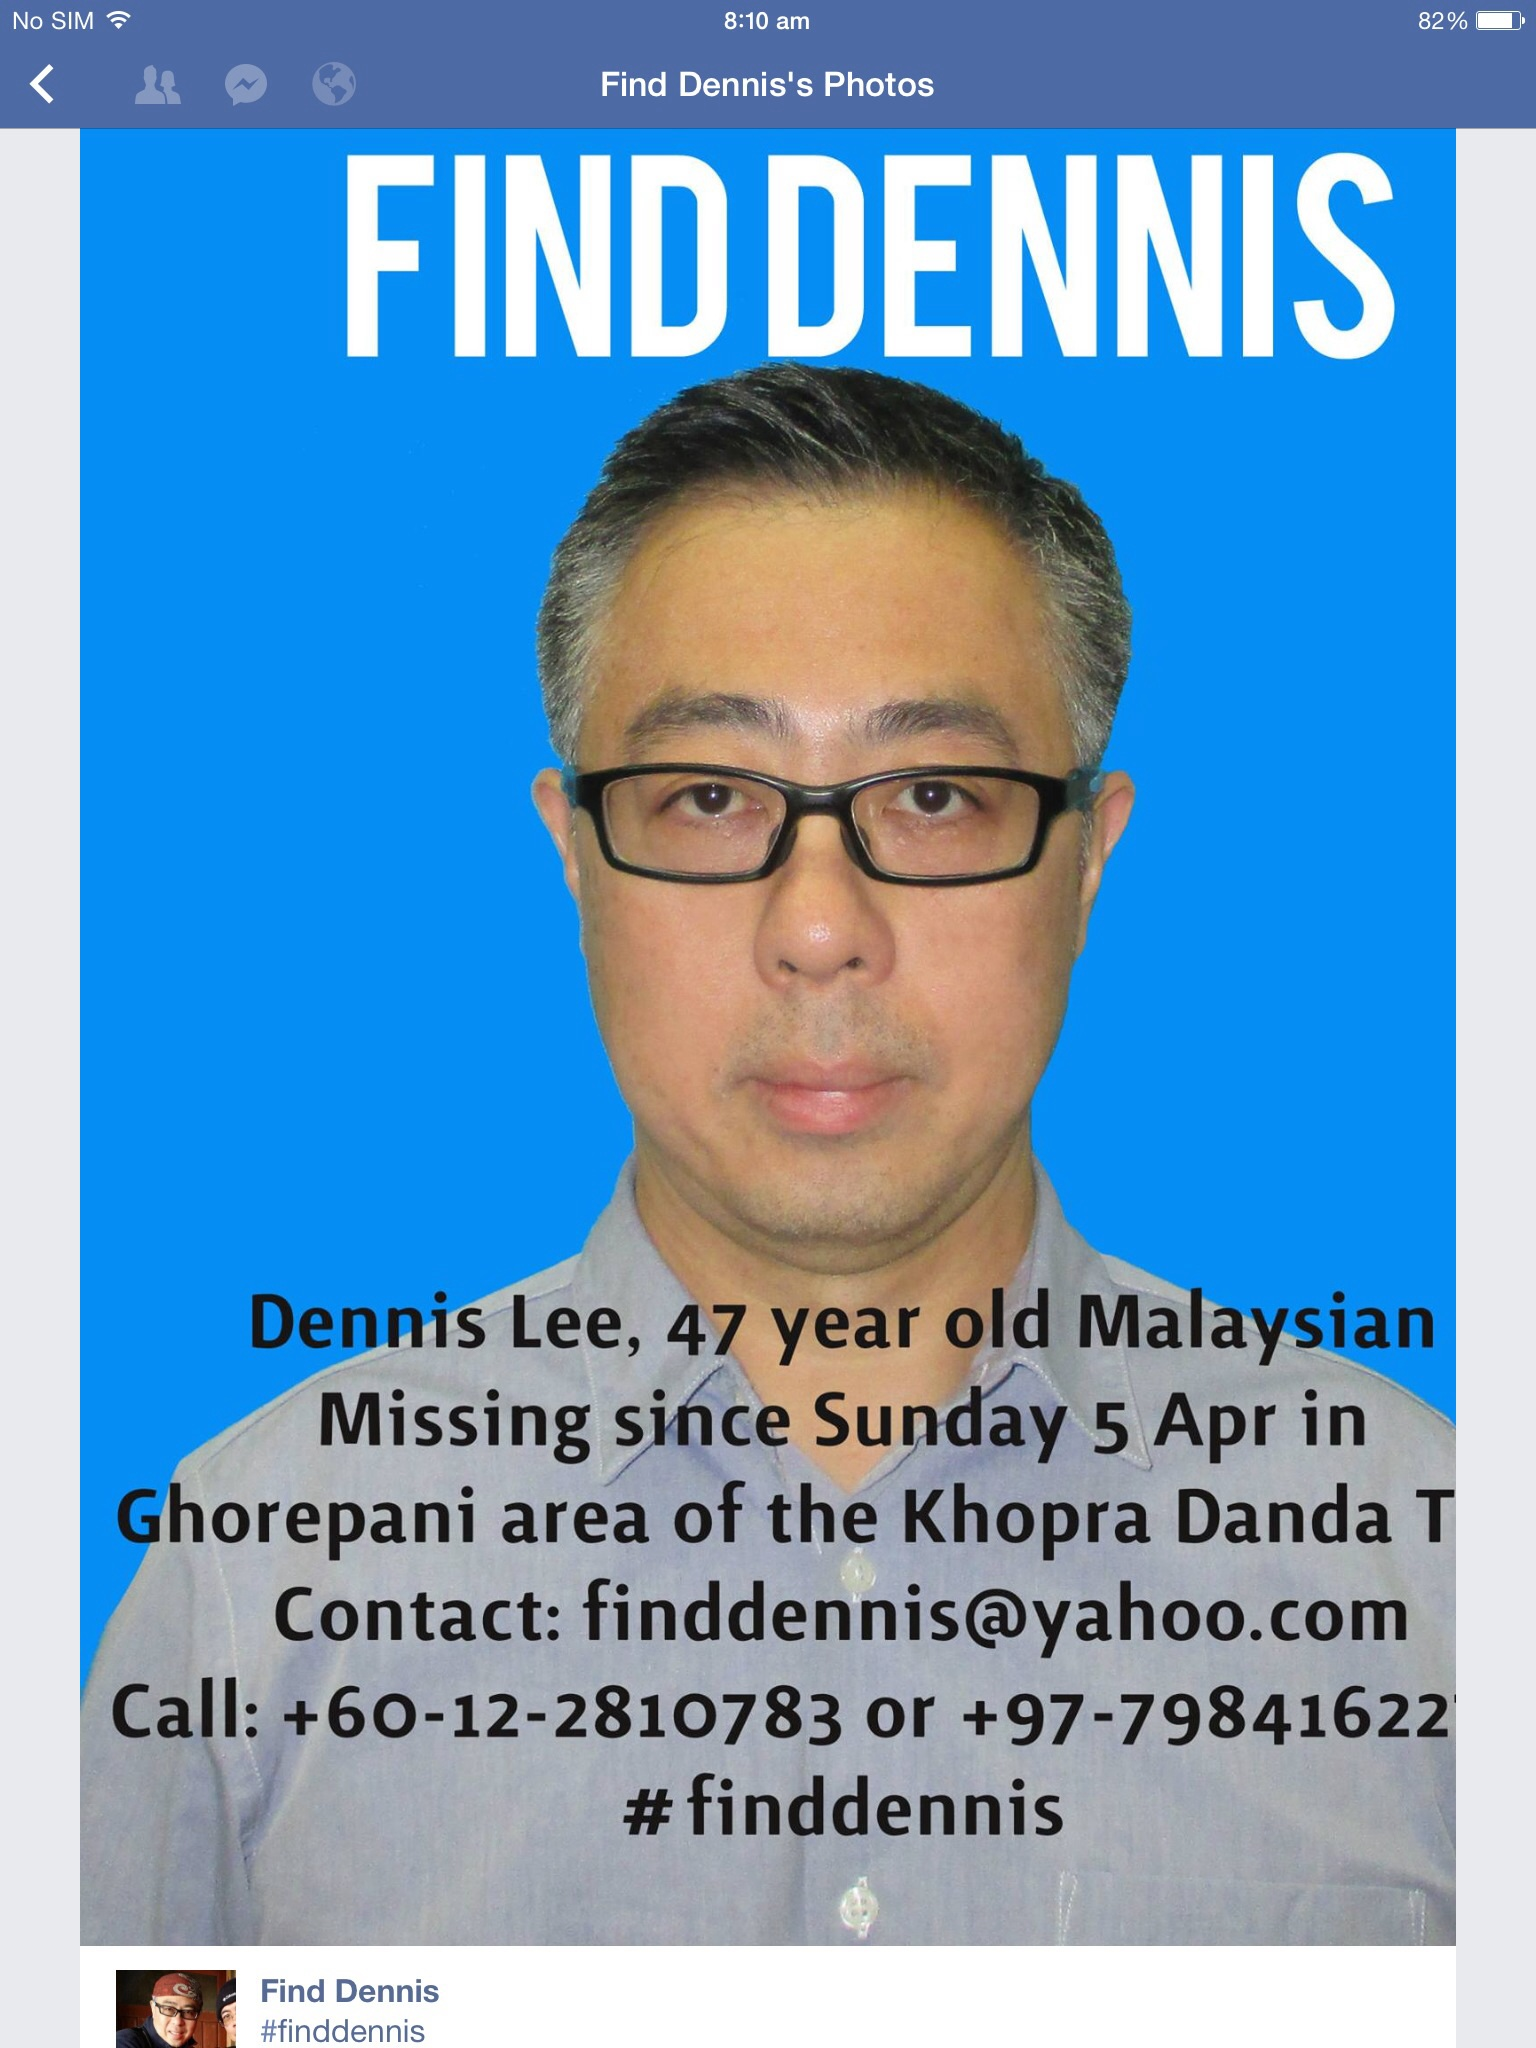 #finddennis poster in English